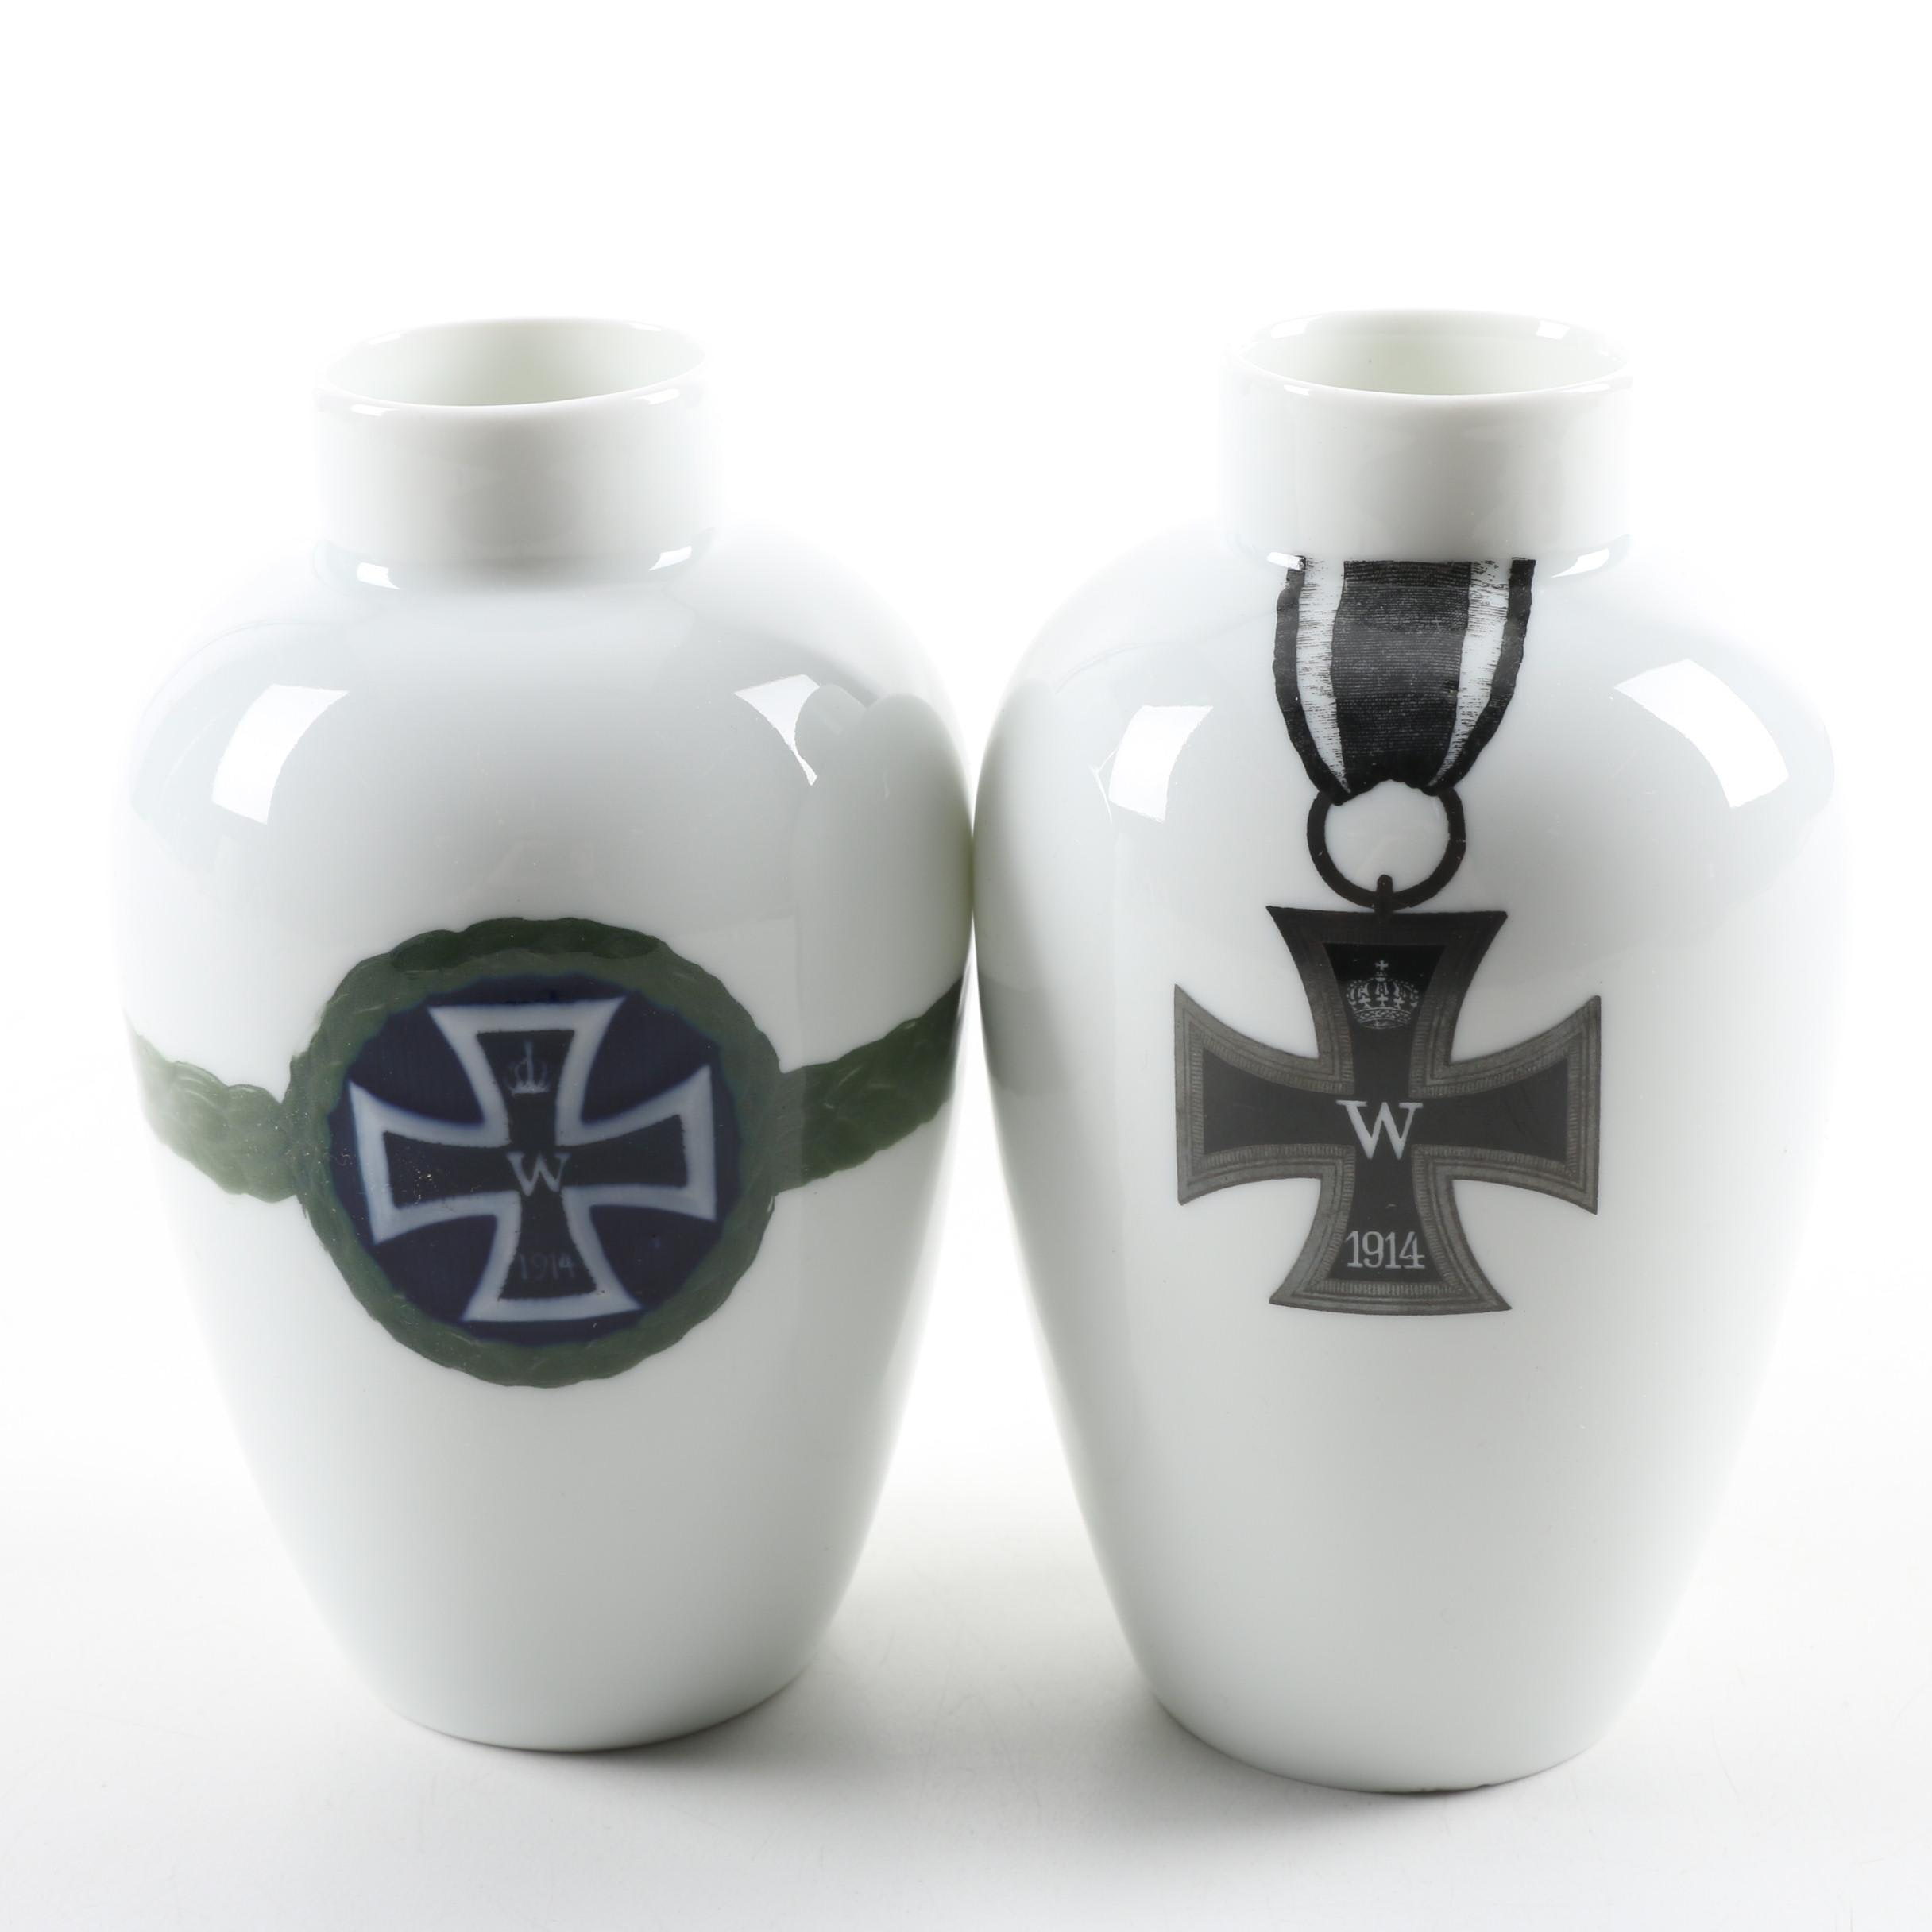 Rosenthal World War One Commemorative Prussian Vases